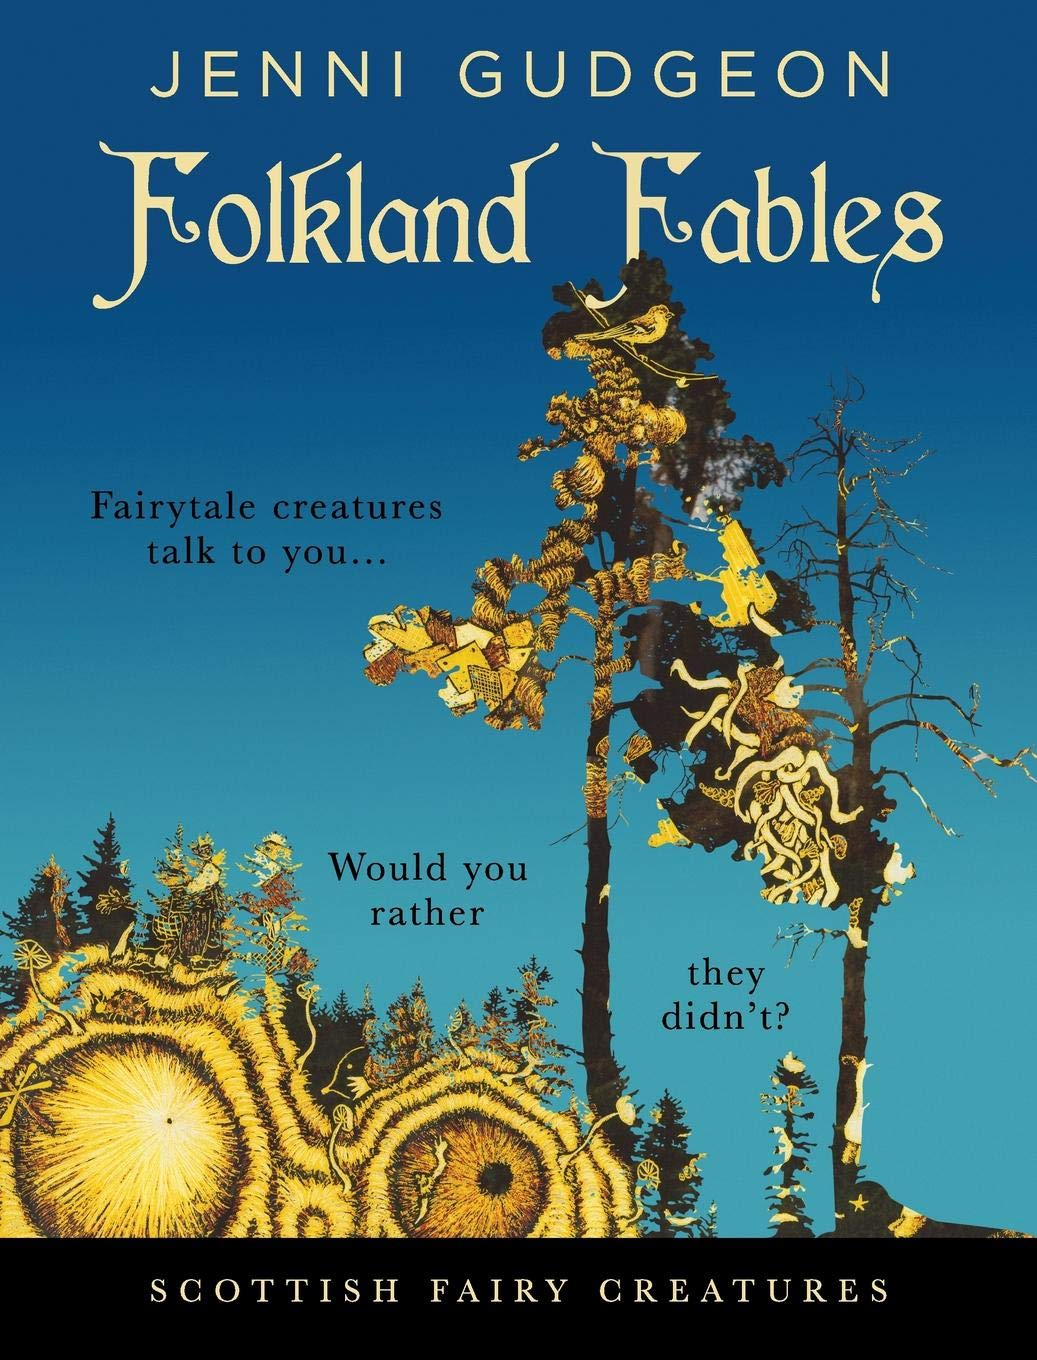 Kidlit Book Review – Folkland Fables: Scottish Fairy Creatures by Jenni Gudgeon